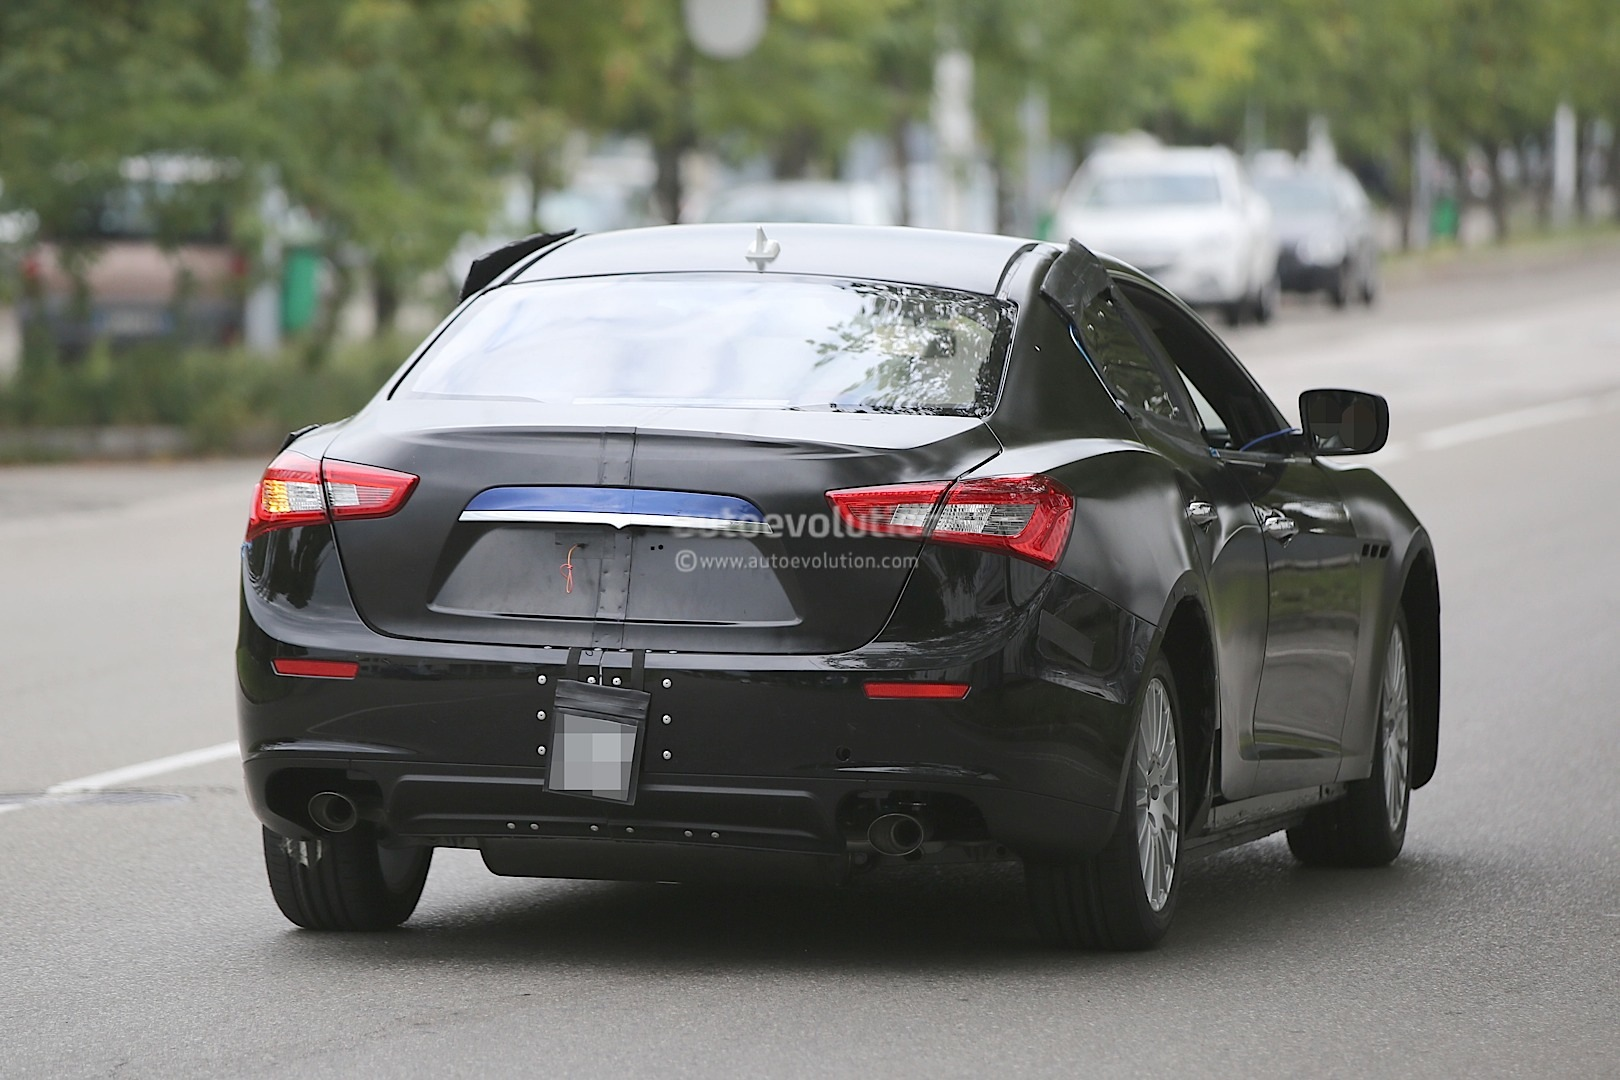 2016 Alfa Romeo Giulia Tipo 952 Spied With Led Lights And 4c Engine Diagram Prototype